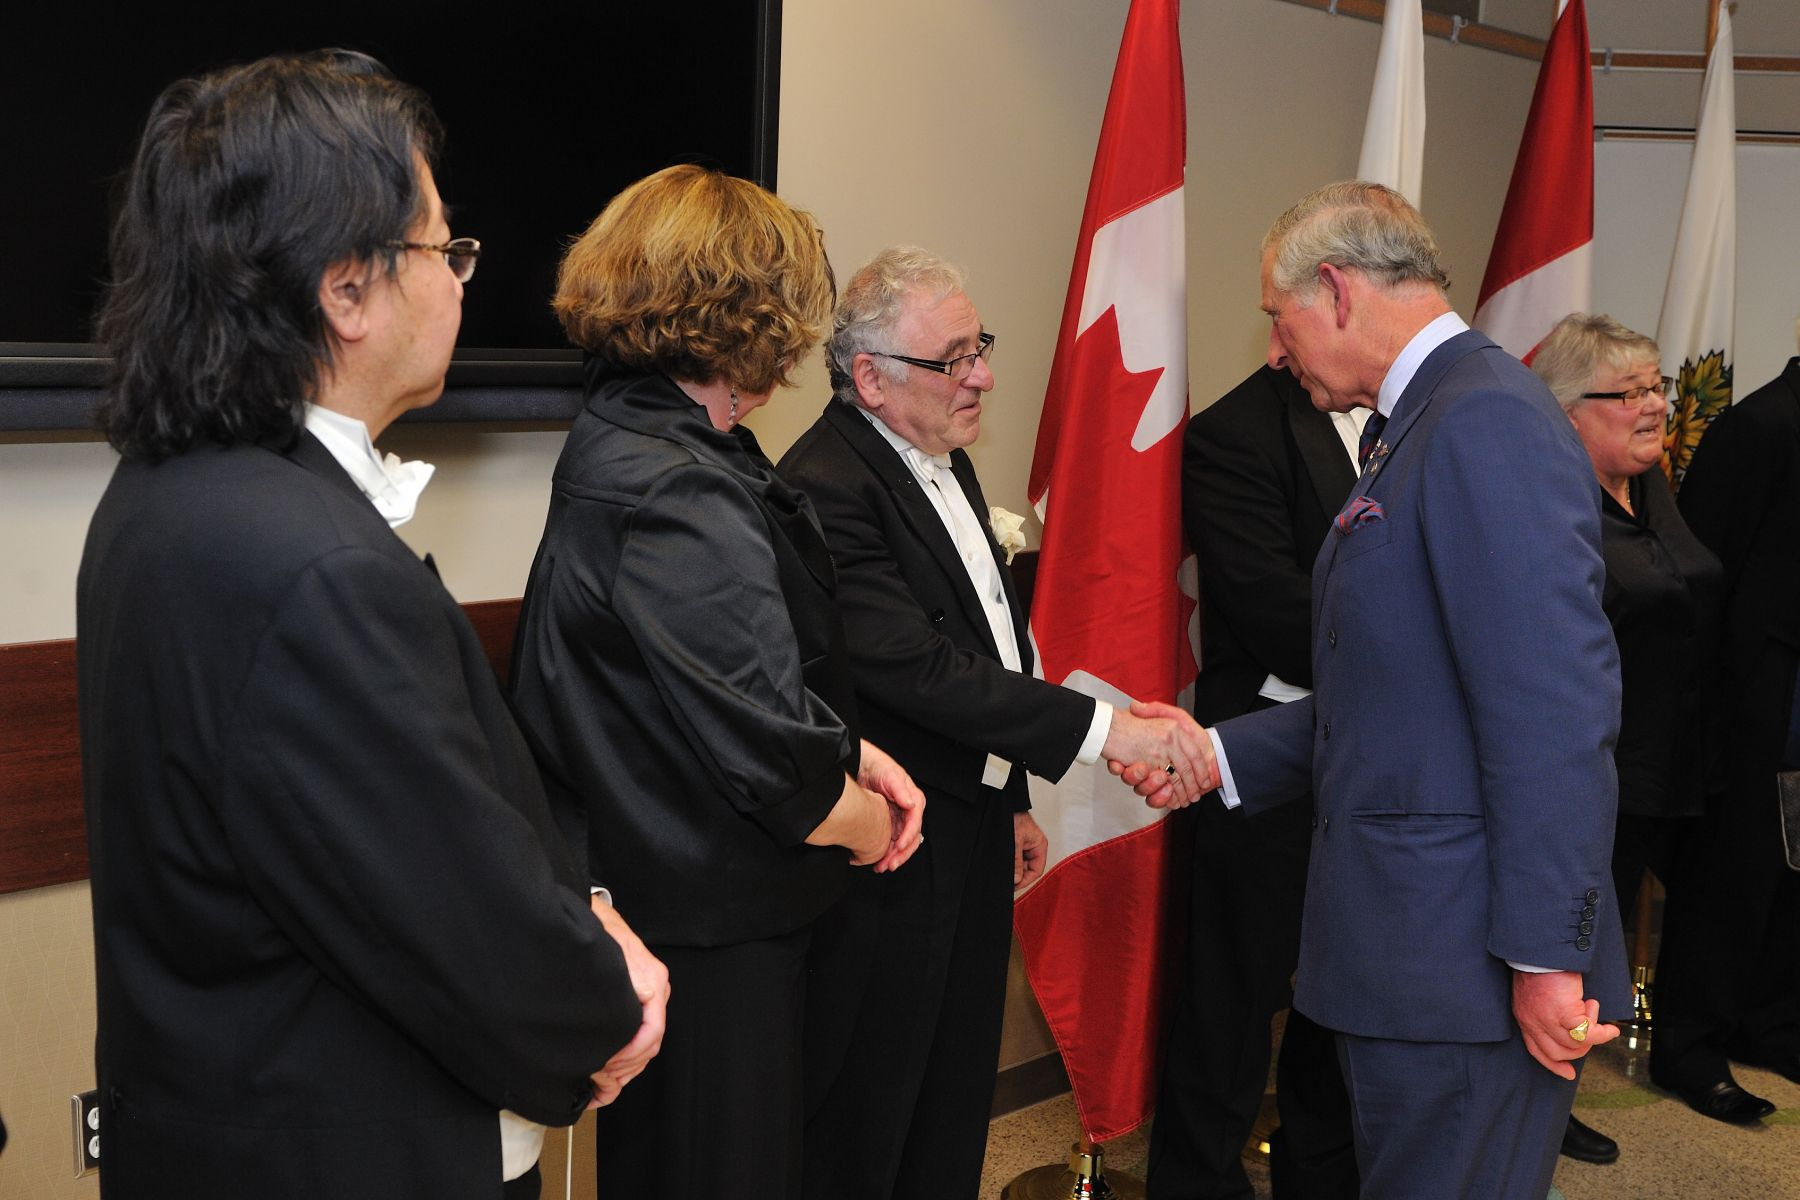 His Royal Highness congratulated the musicians of the Regina Symphony Orchestra.